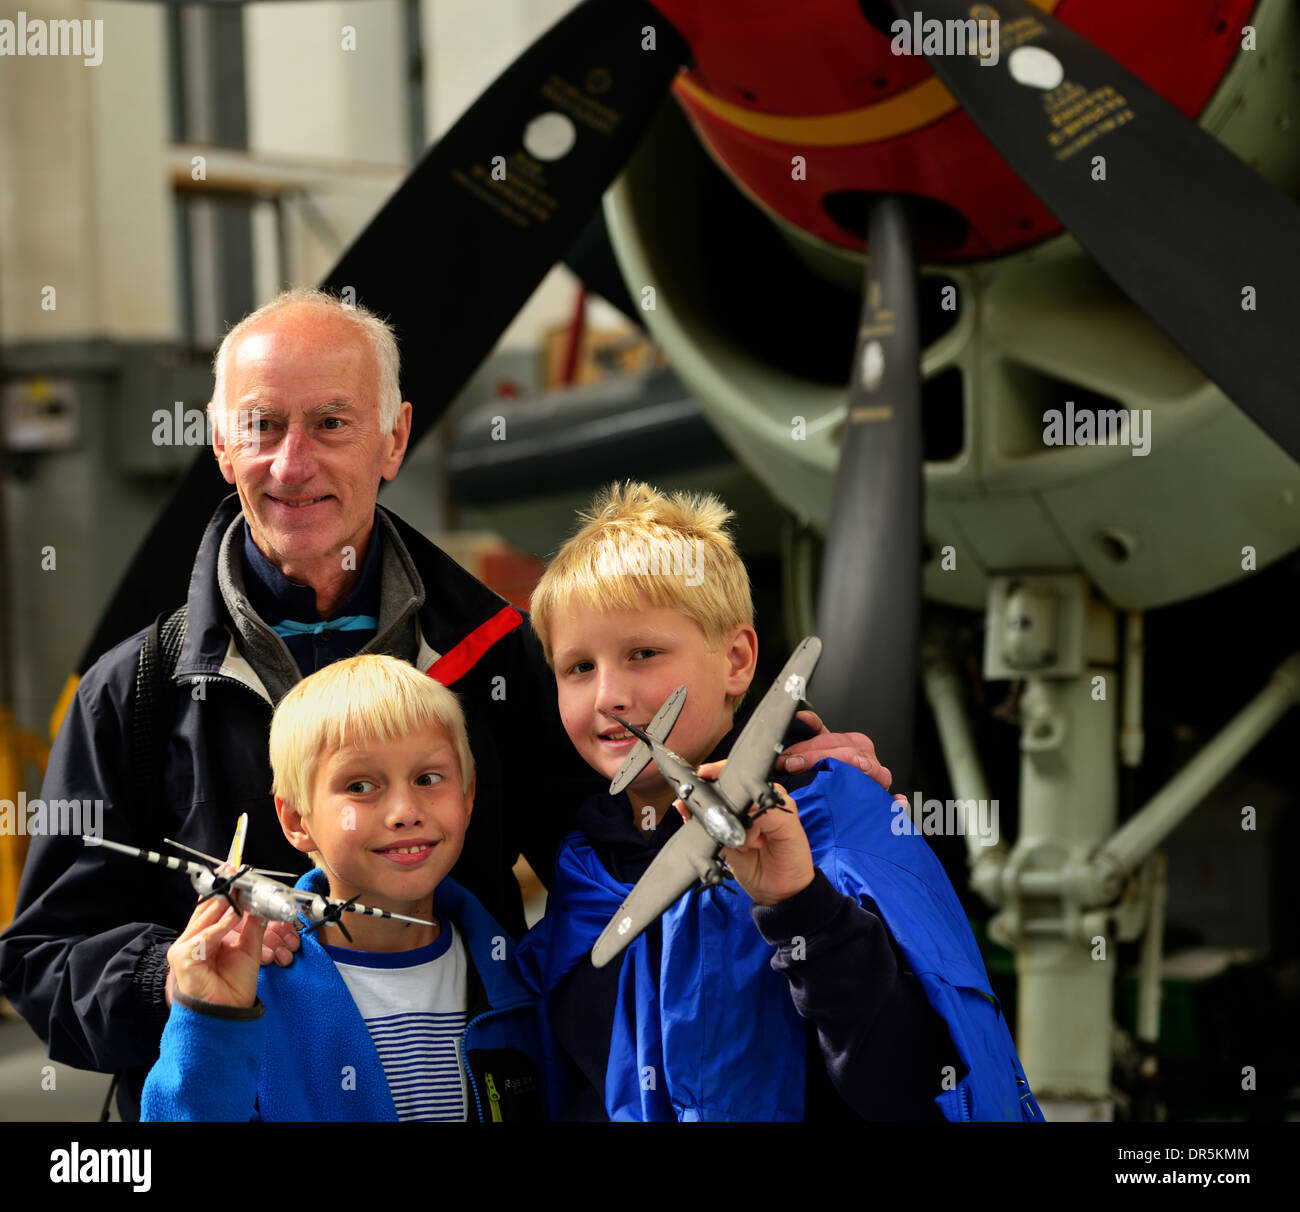 Father with two young blonde boys with model planes in an aircraft hanger at Duxford air museum - Stock Image